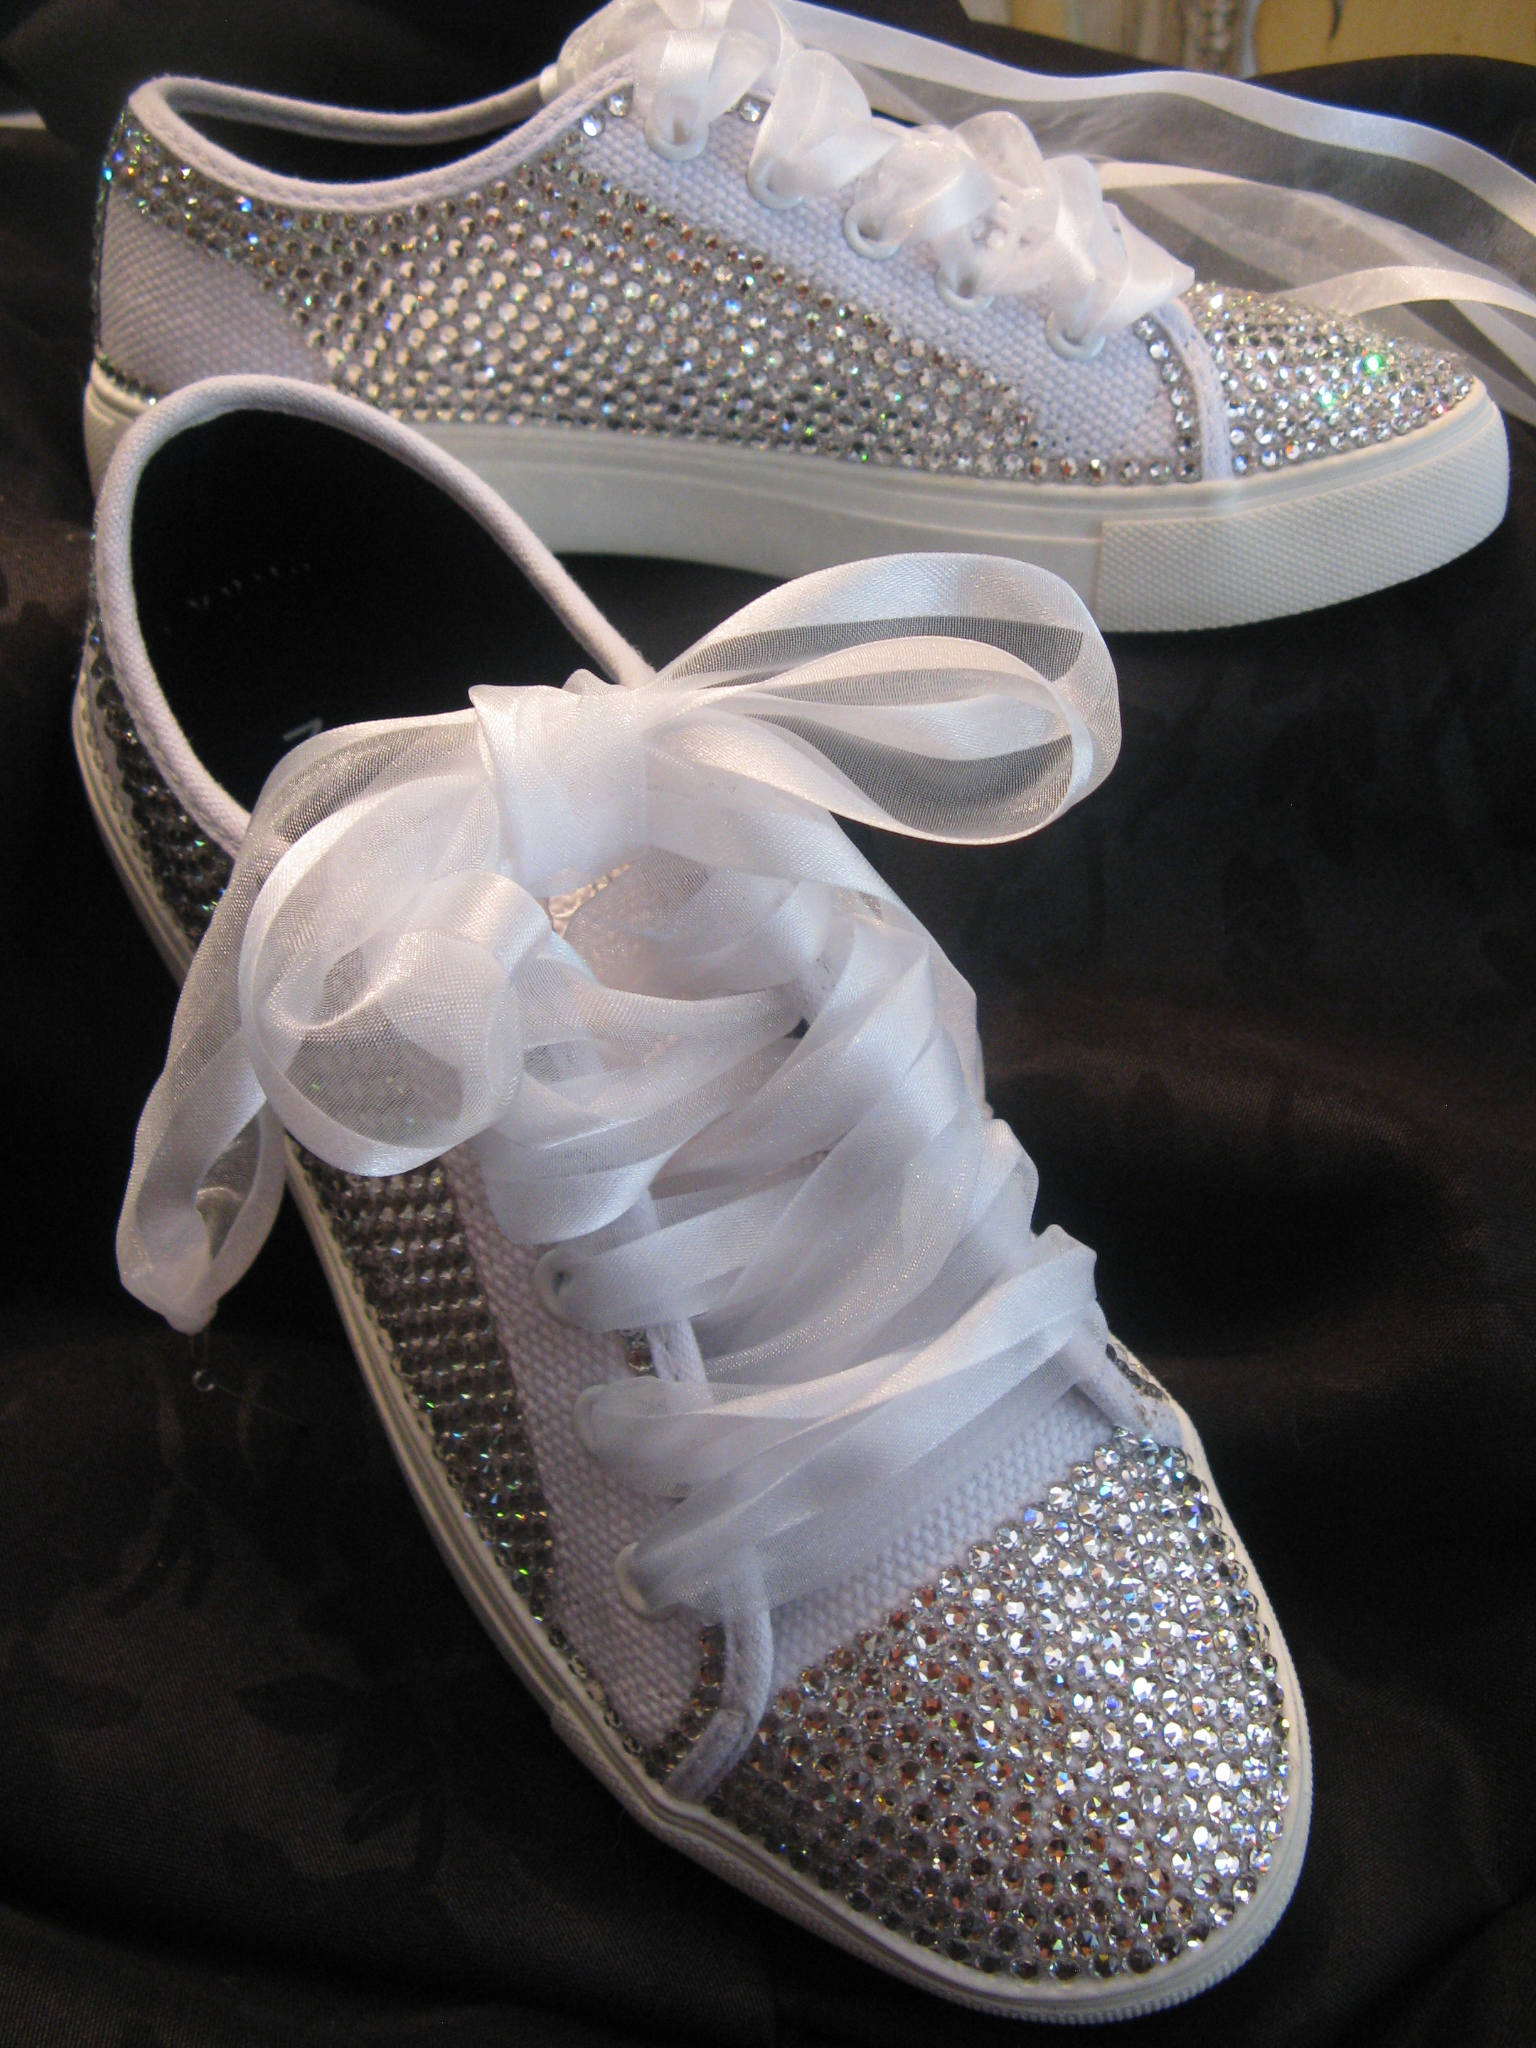 637c924b91f7 CUSTOM SWAROVSKI SNEAKERS-Send Us Your SneakersSparkle Up